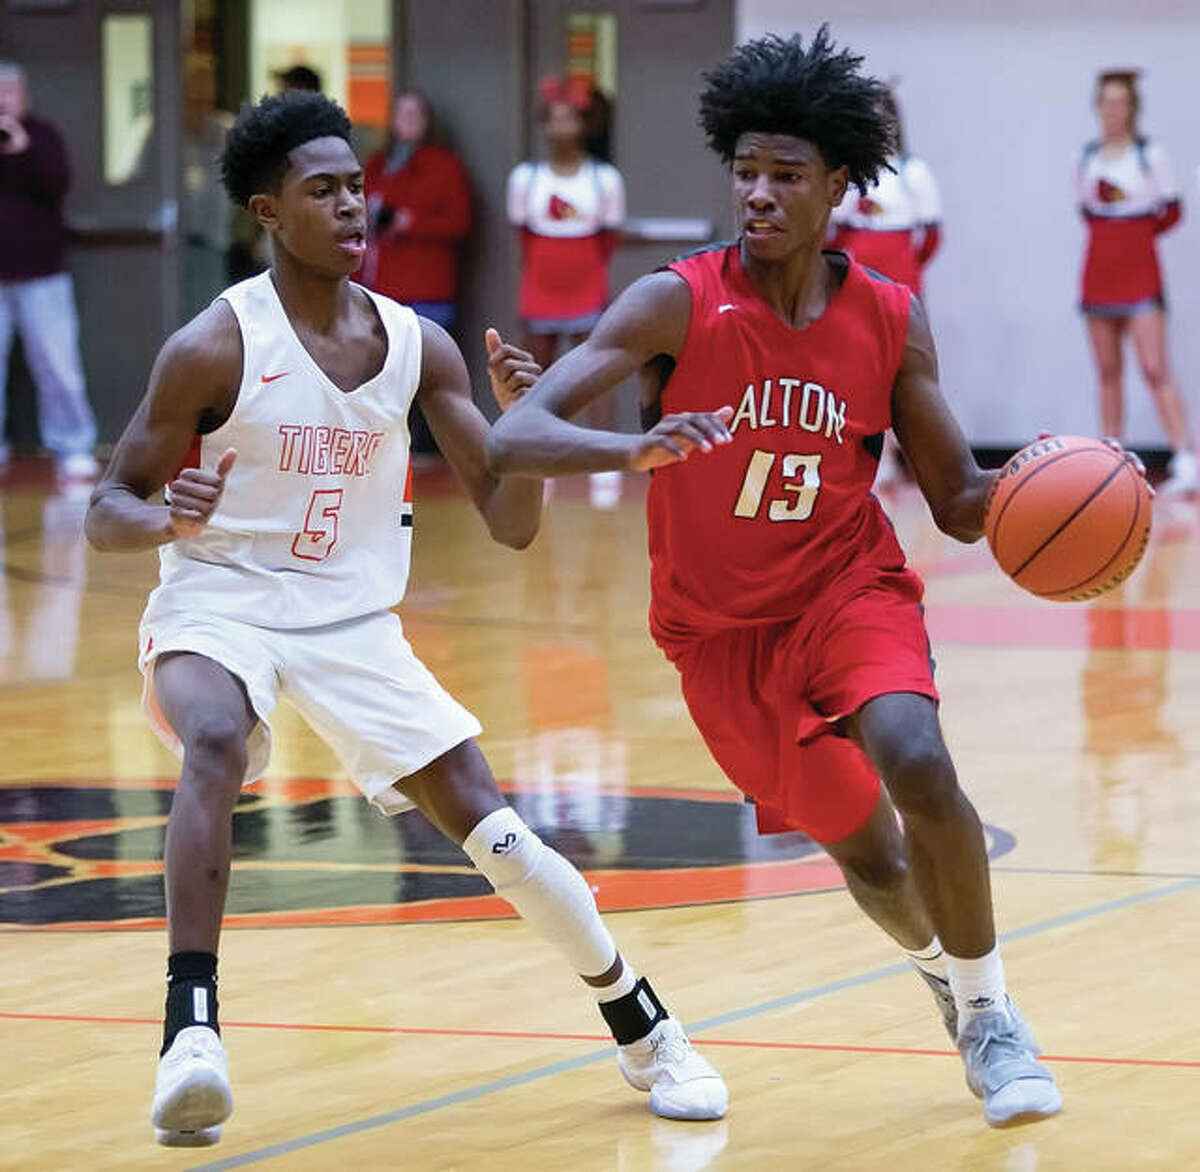 Alton's Malik Smith (right) dribbles past Edwardsville's Lavontas Hairston during the first half Friday night in Edwardsville.